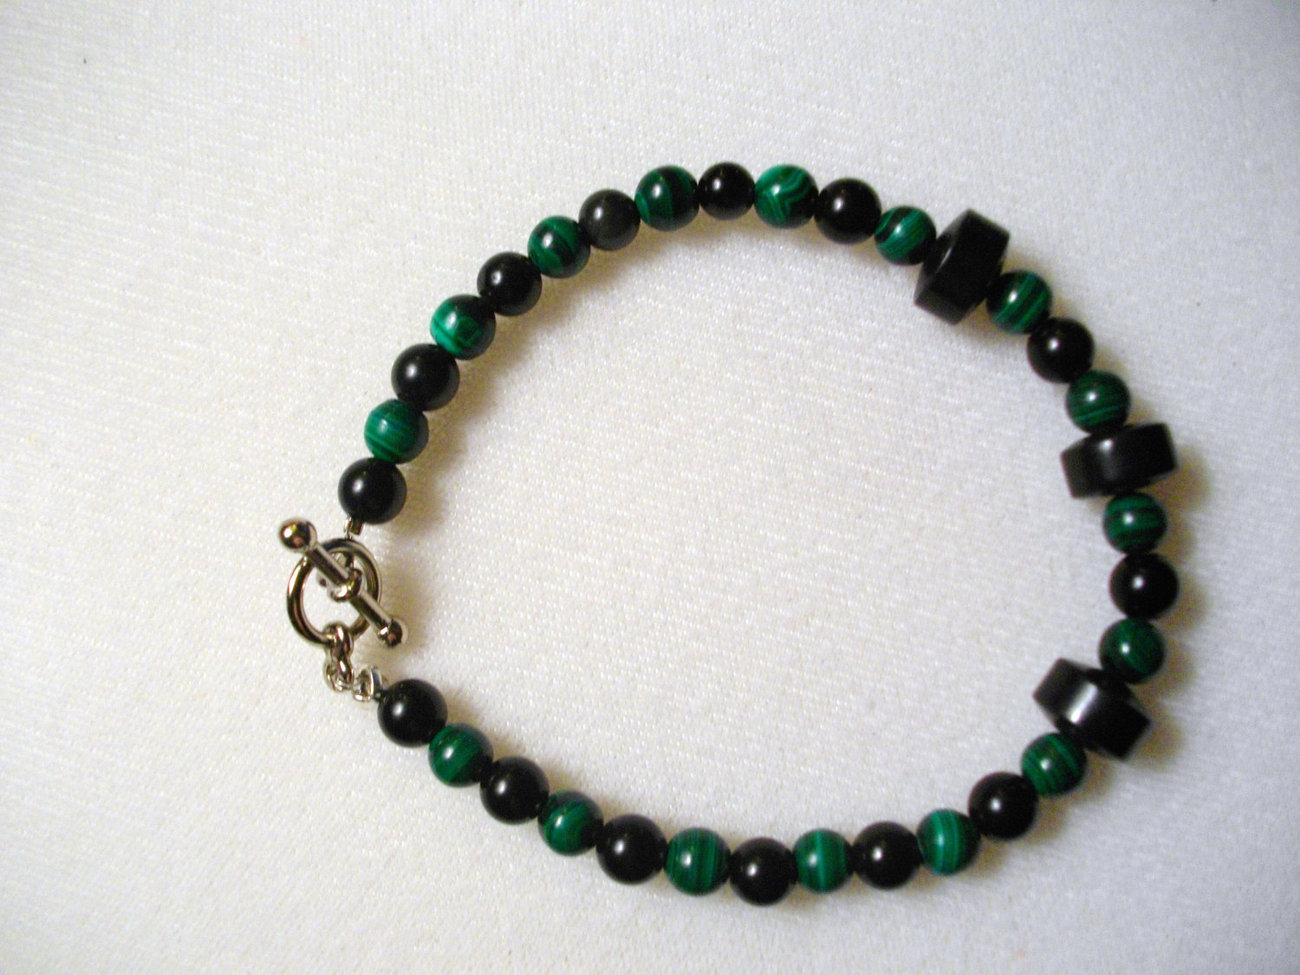 C-24  Green Malachite, Black Jade And Black Jasper Necklace